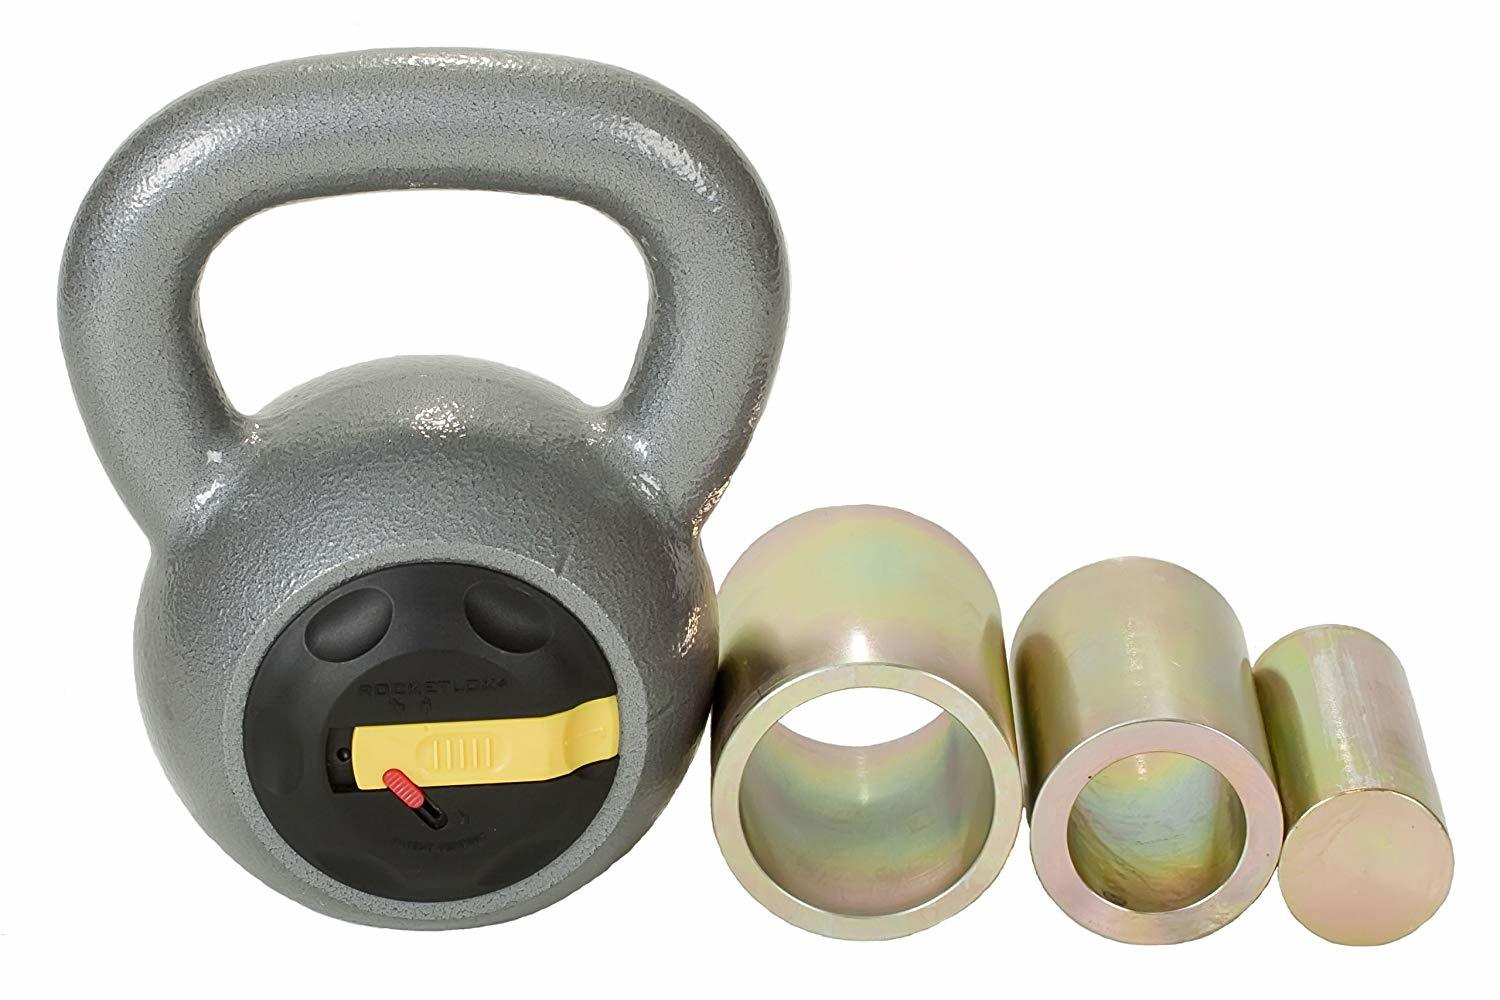 Rocketlok Adjustable Kettlebell - Adjustable Kettlebells